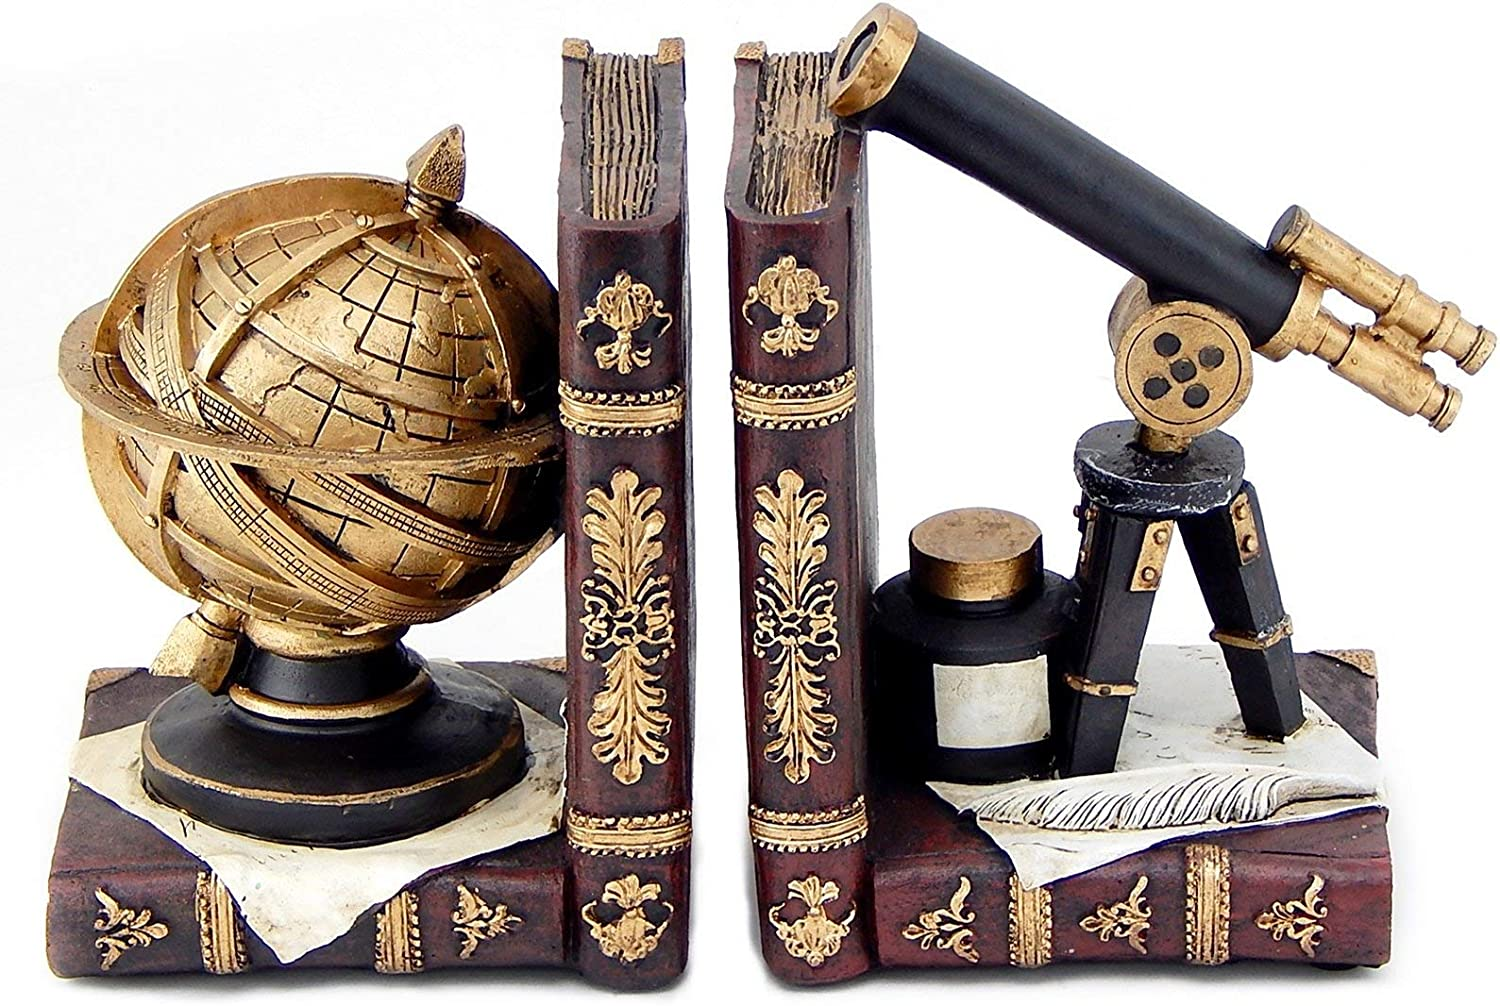 Bellaa 26355 Astronomy Bookends Galileo Space Time Book Decor 6 inch